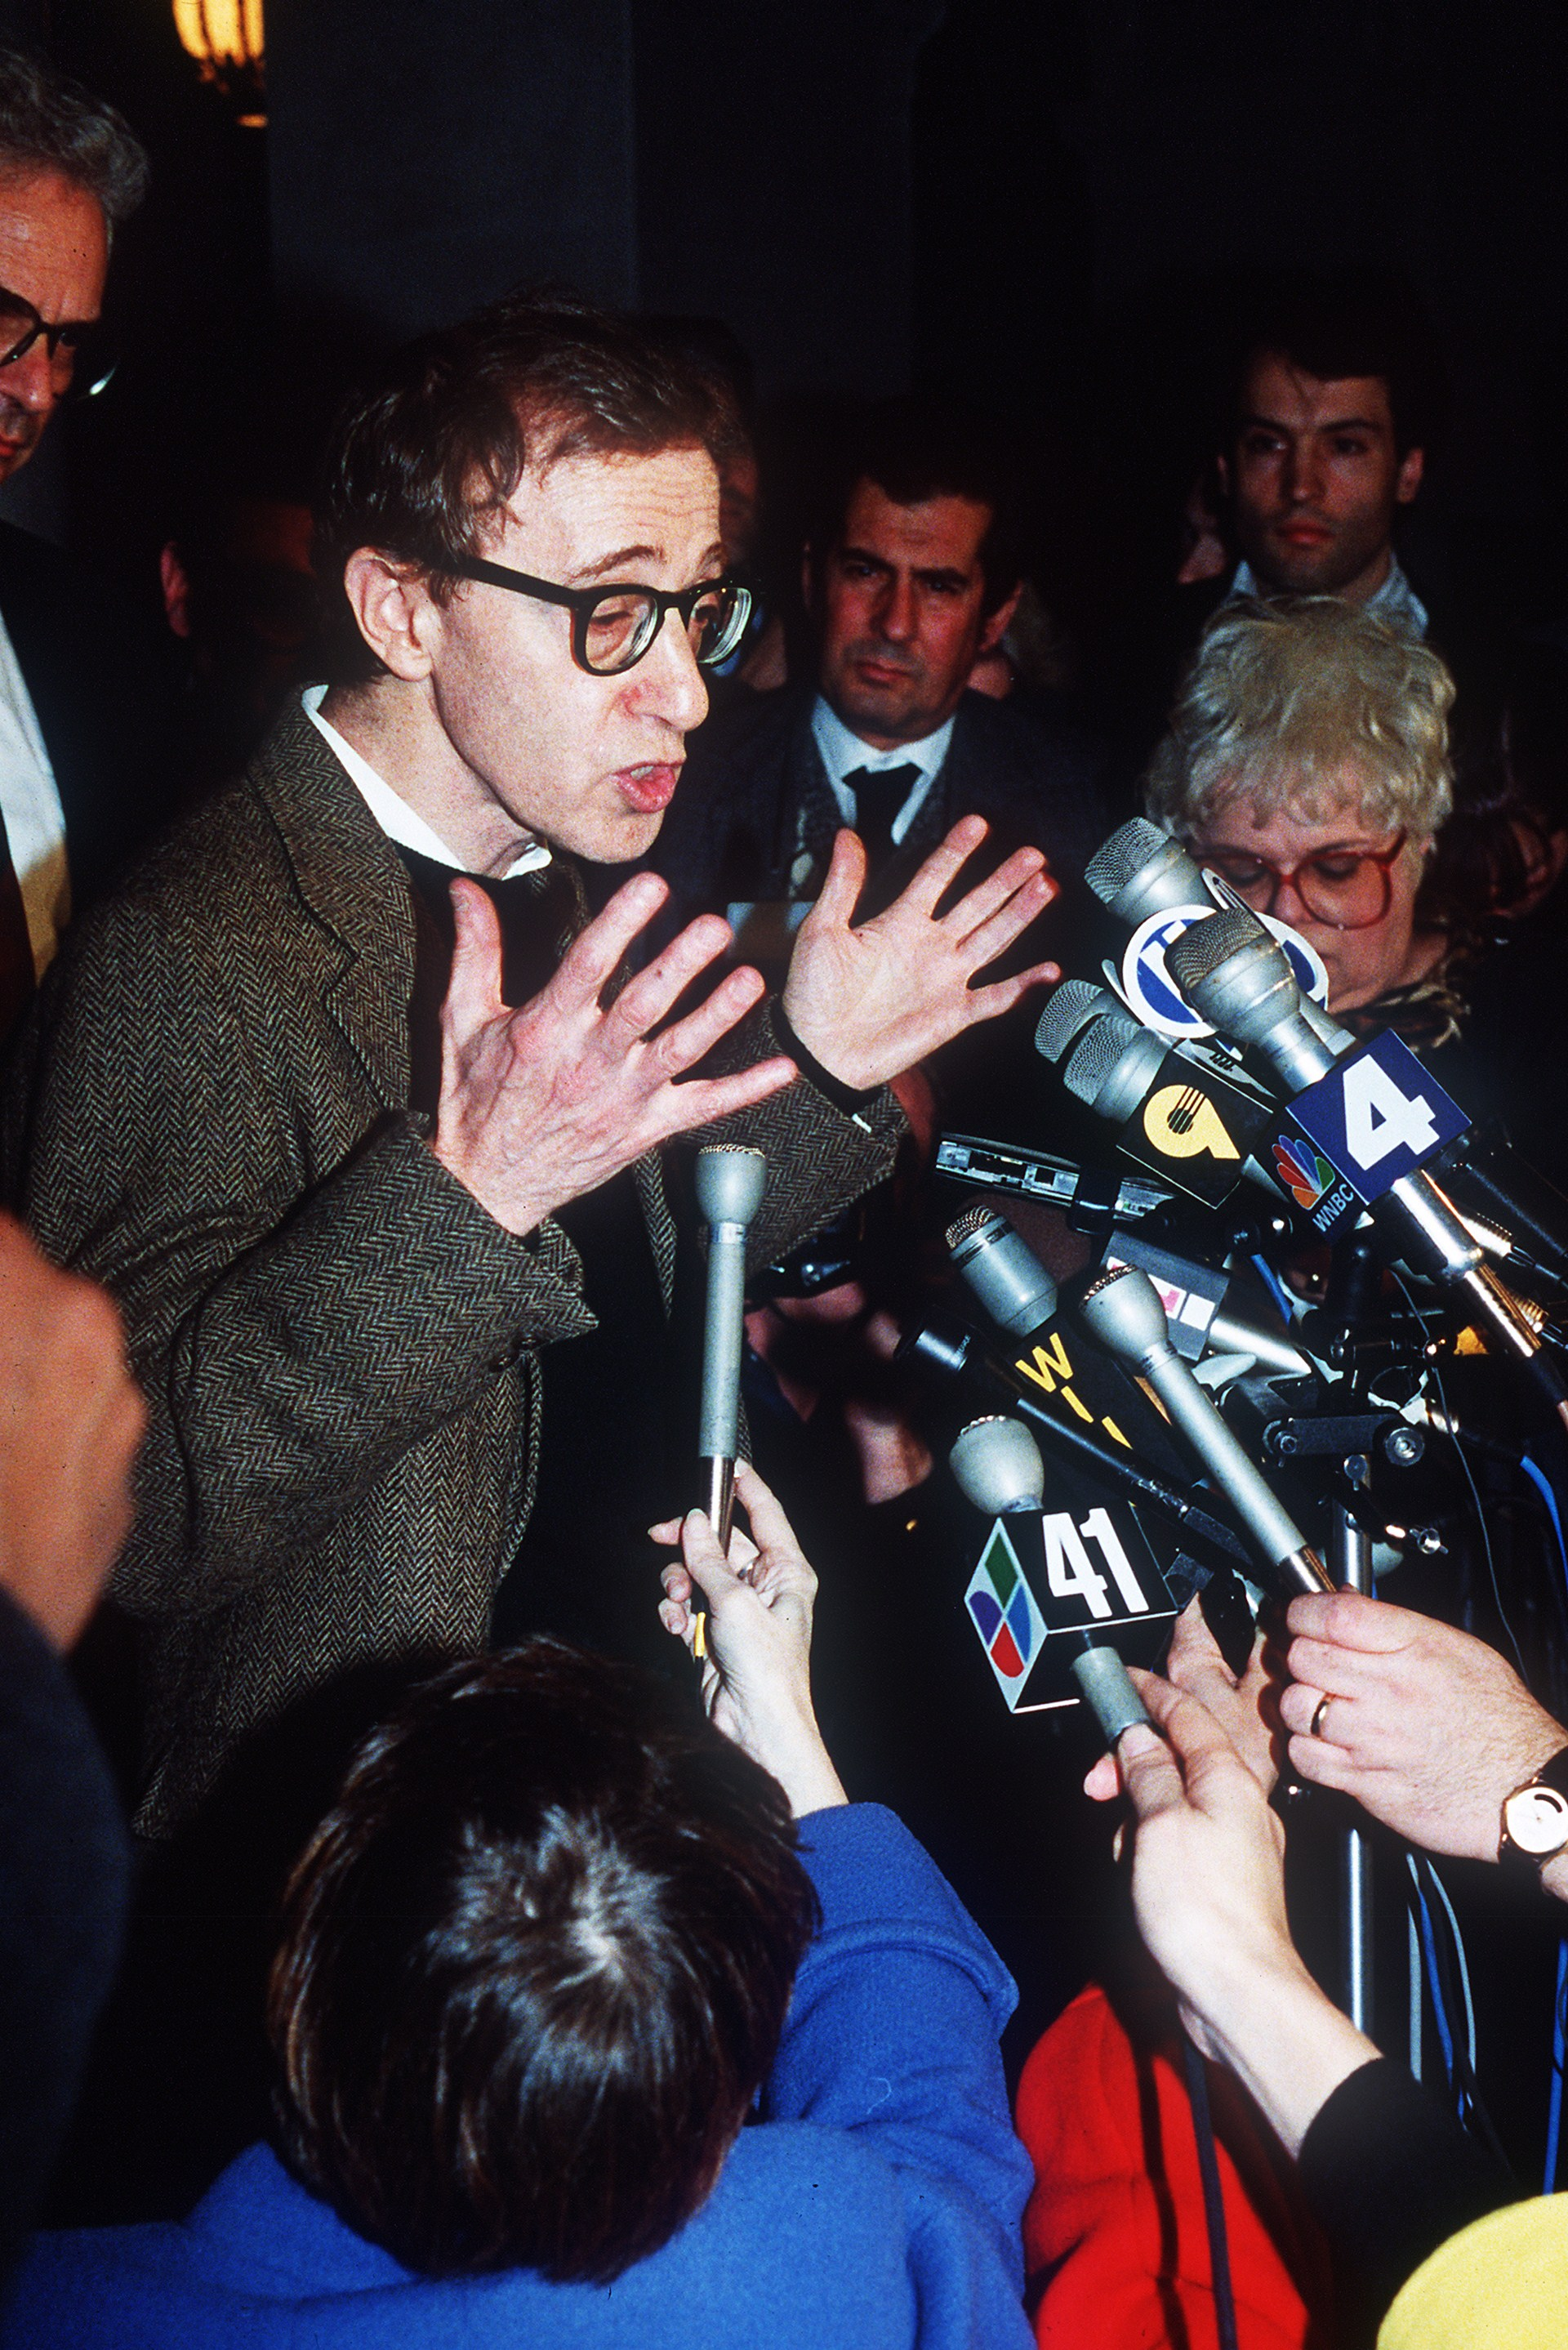 American actor and director Woody Allen speaks to the media, 15 December 1992 in New-York, after a pre-trial hearing in the custody fight with his wife, the American actress Mia Farrow, as his battle for the custody of their children continues. Woody Allen was cleared of allegations brought by Mia Farrow that he sexually abused their adopted daughter. Farrow's lawyers are asking that Allen not be allowed to contact his adopted daughter Dylan and not seek custody when his wife dies. (Photo: HAI DO/AFP via Getty Images)